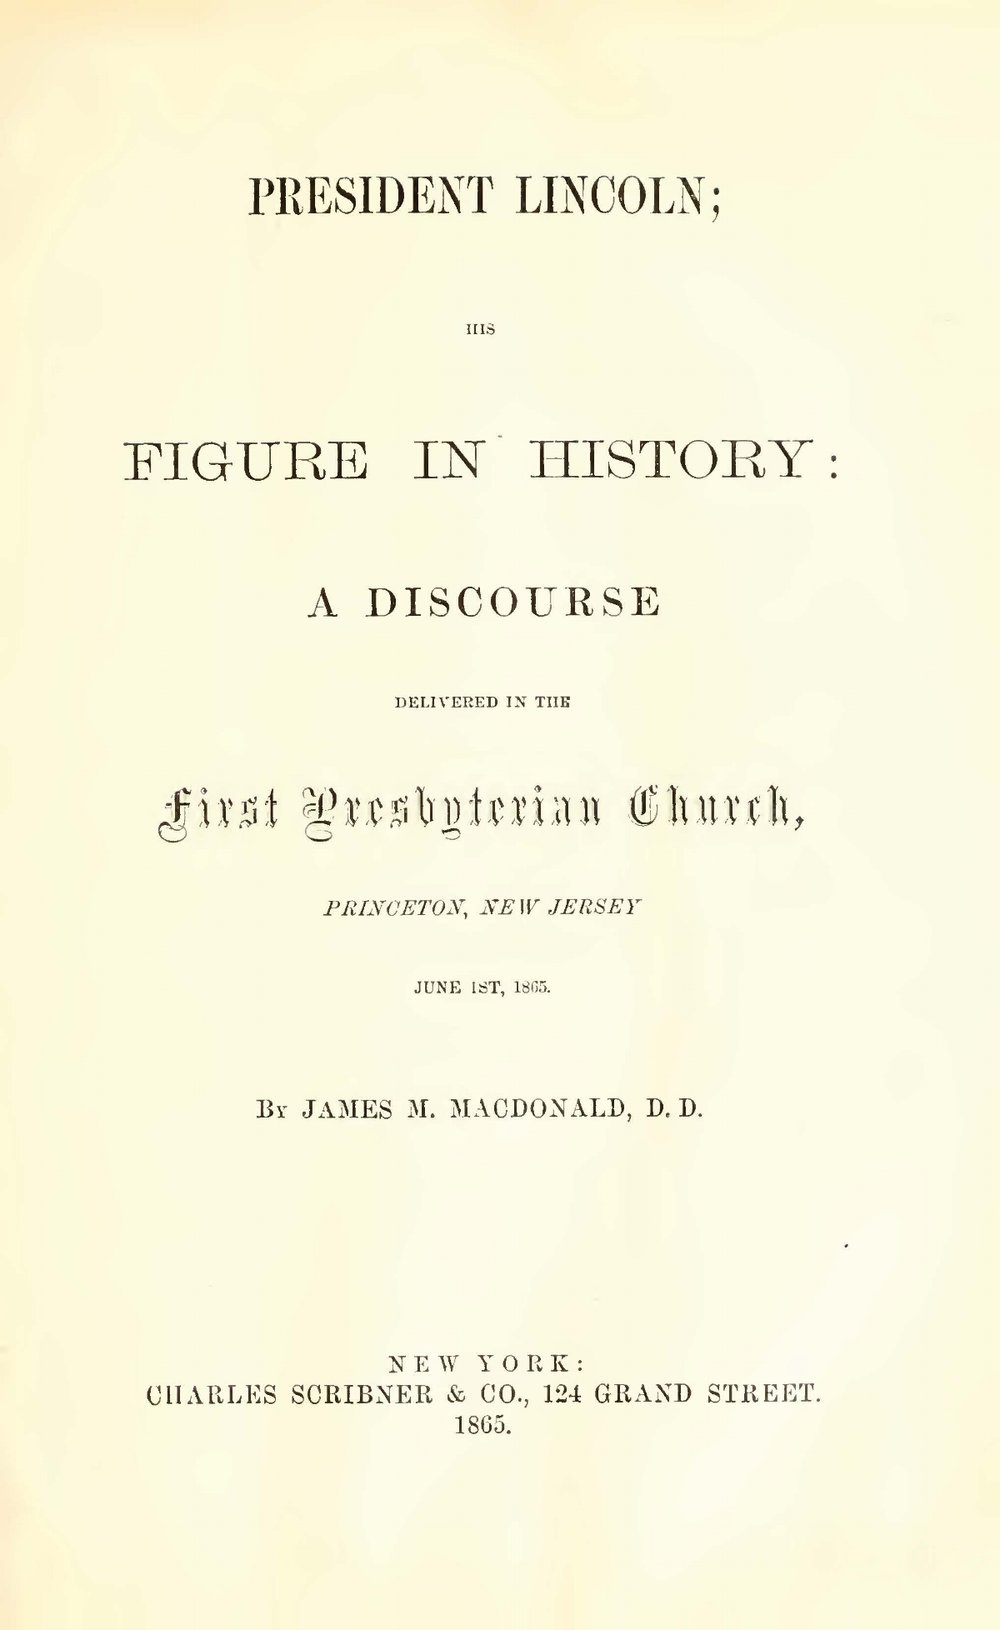 McDonald, James Madison, President Lincoln; His Figure in History Title Page.jpg